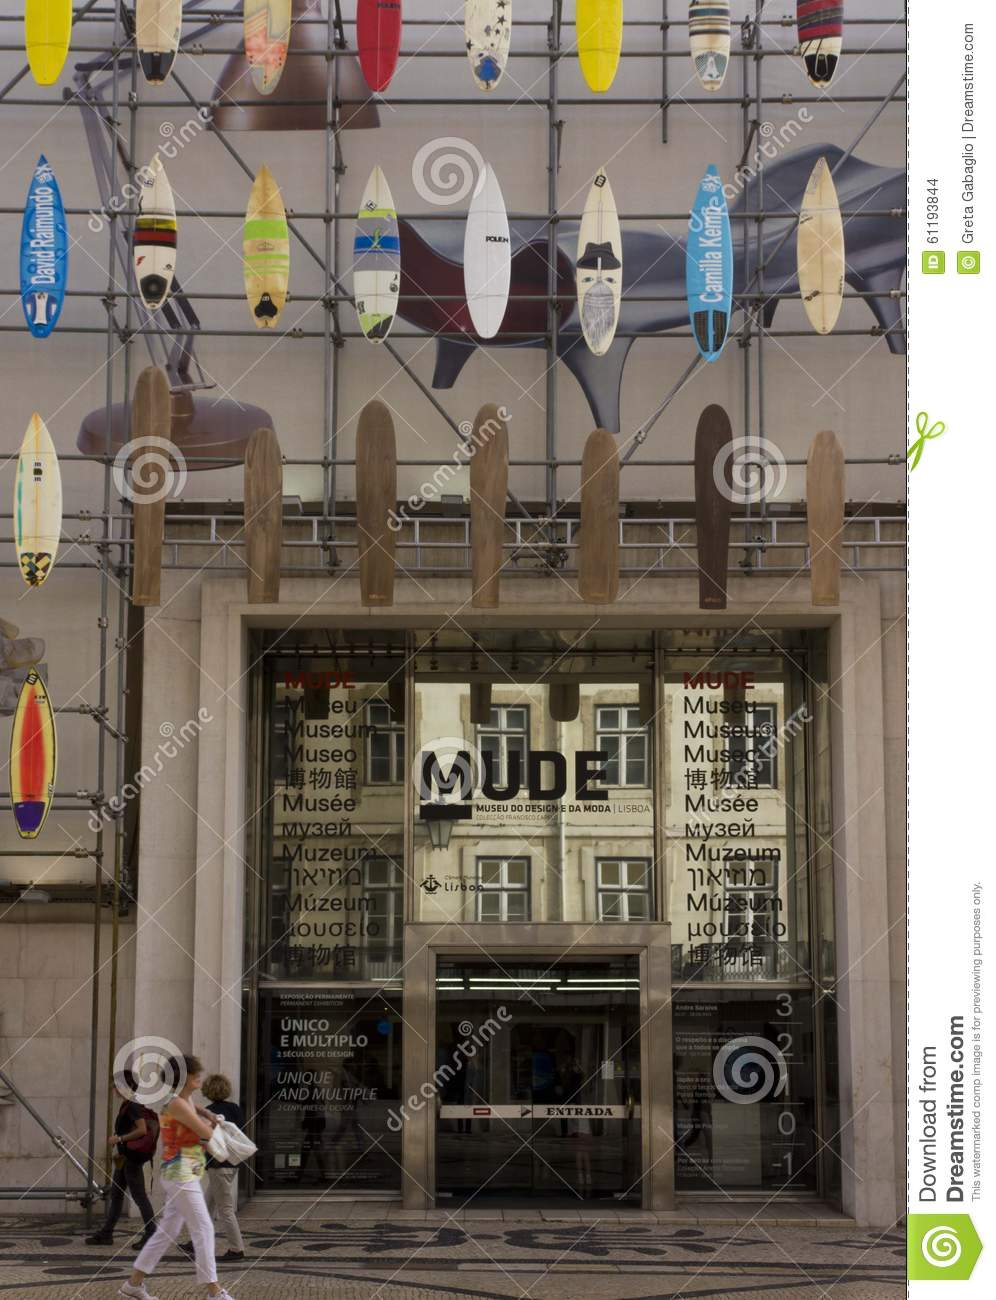 Mude Museum Of Fashion And Design In Lisbon Editorial Stock Image Image Of Surfboard October 61193844